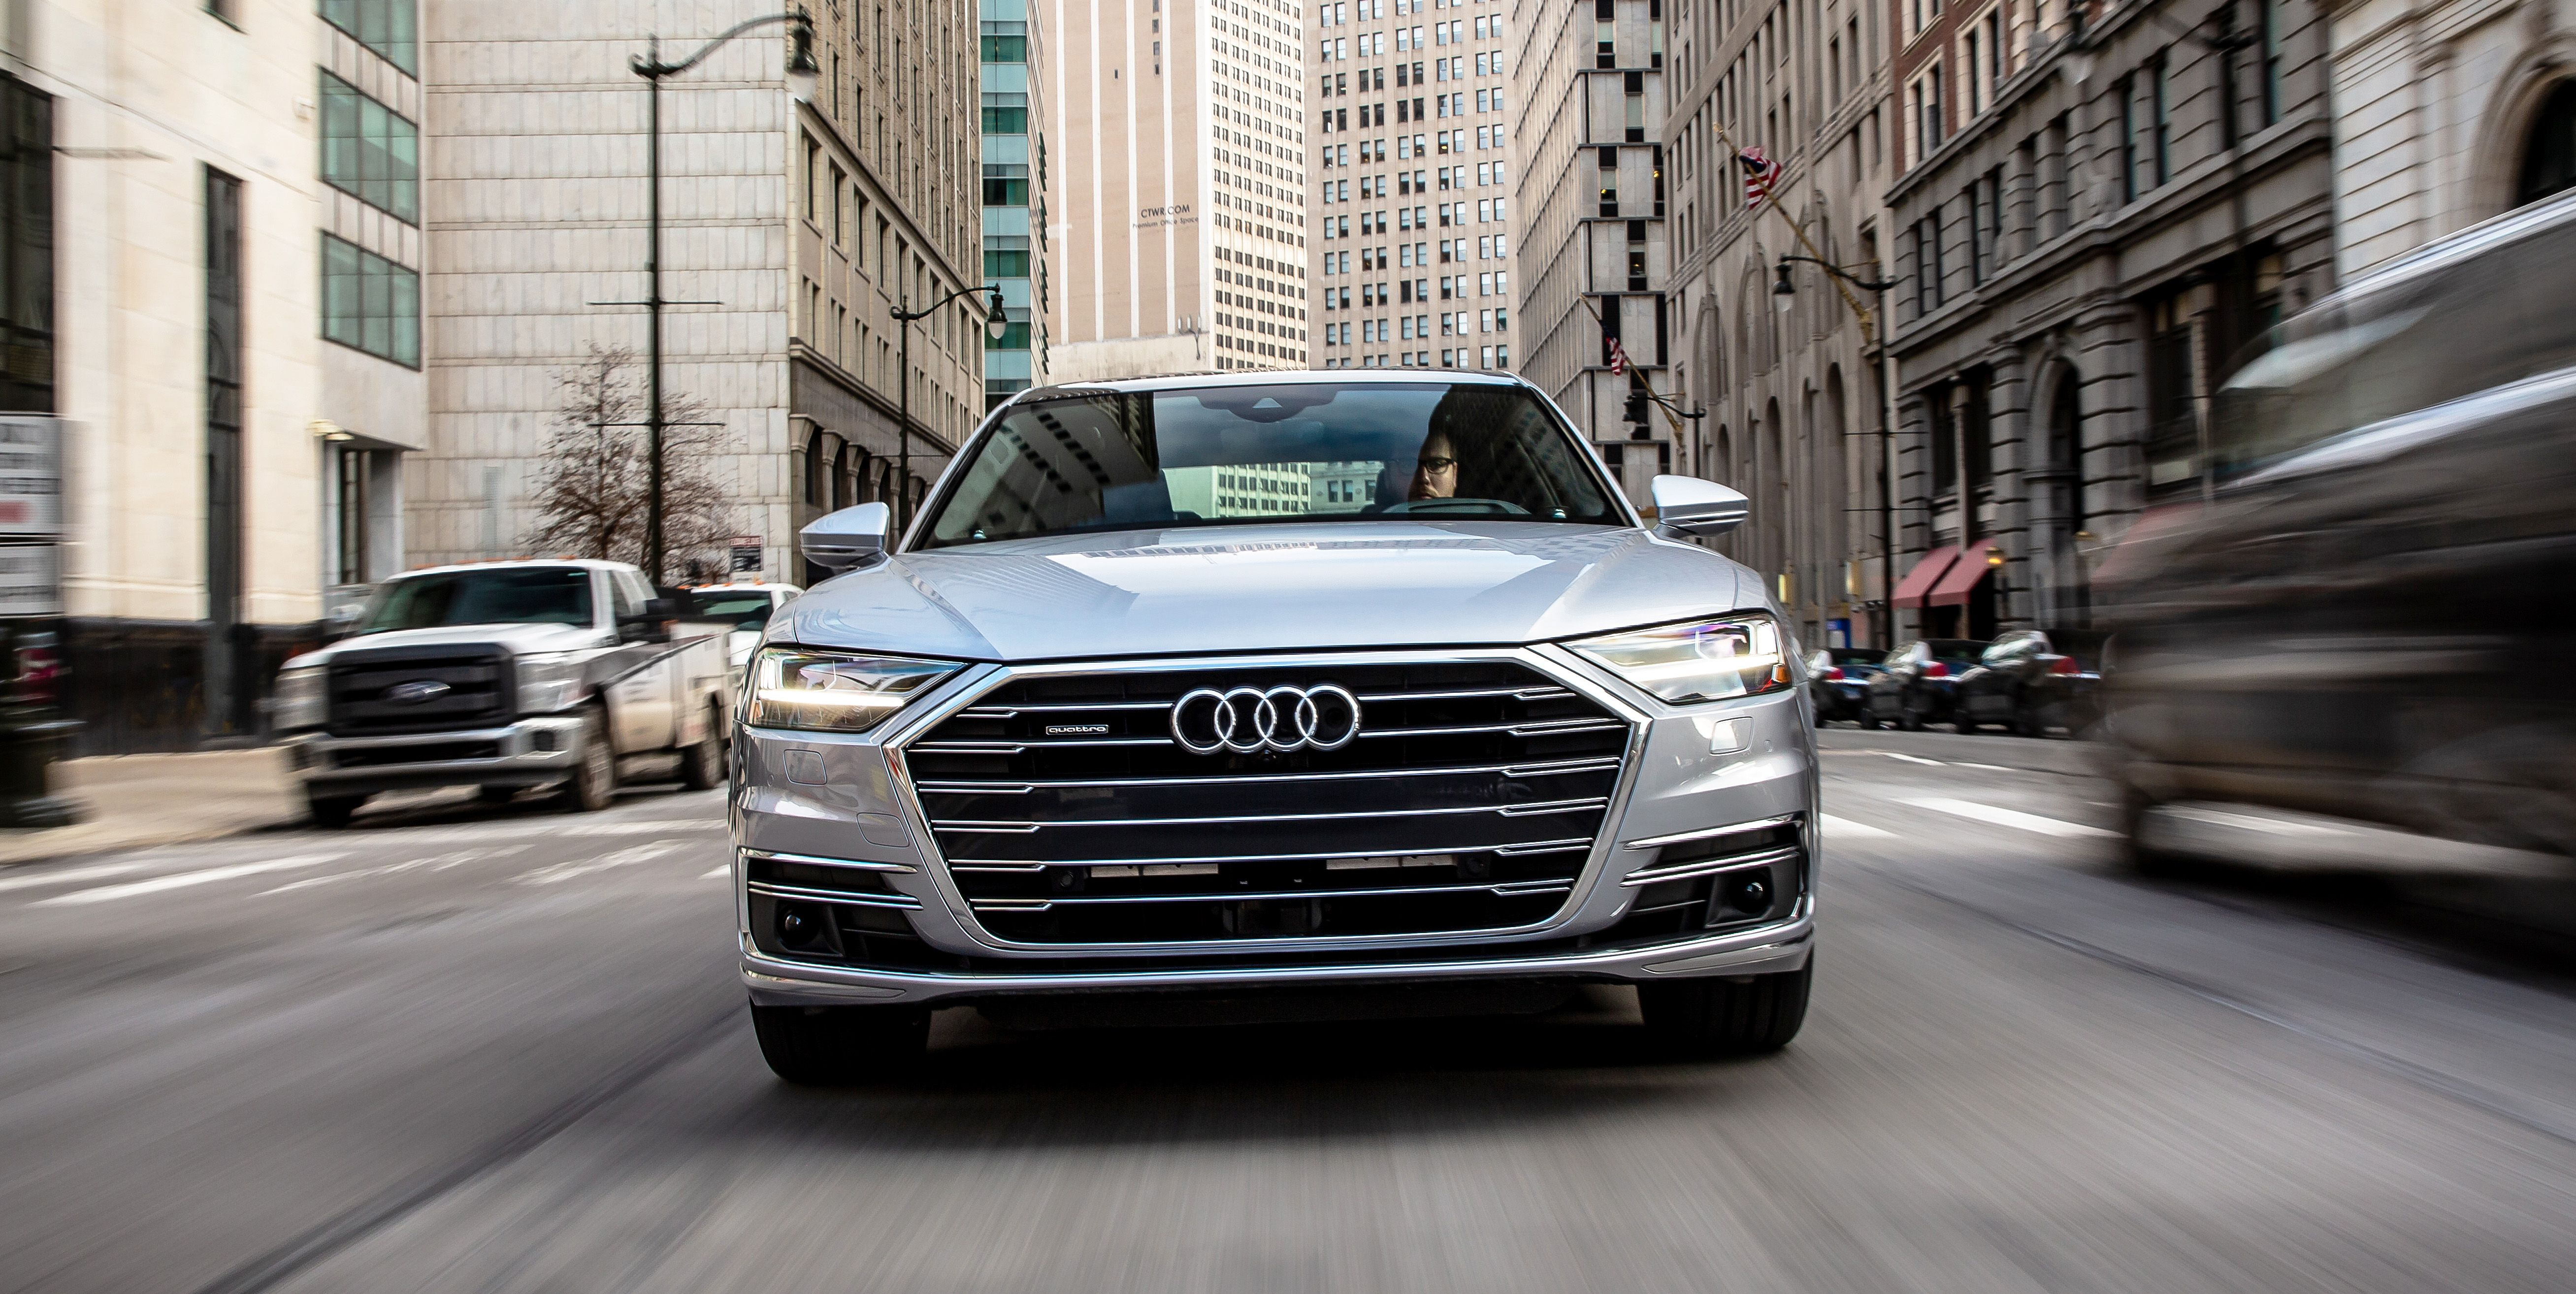 The Audi A8 May Go Electric and Ultra-Luxurious with a New High-End Model